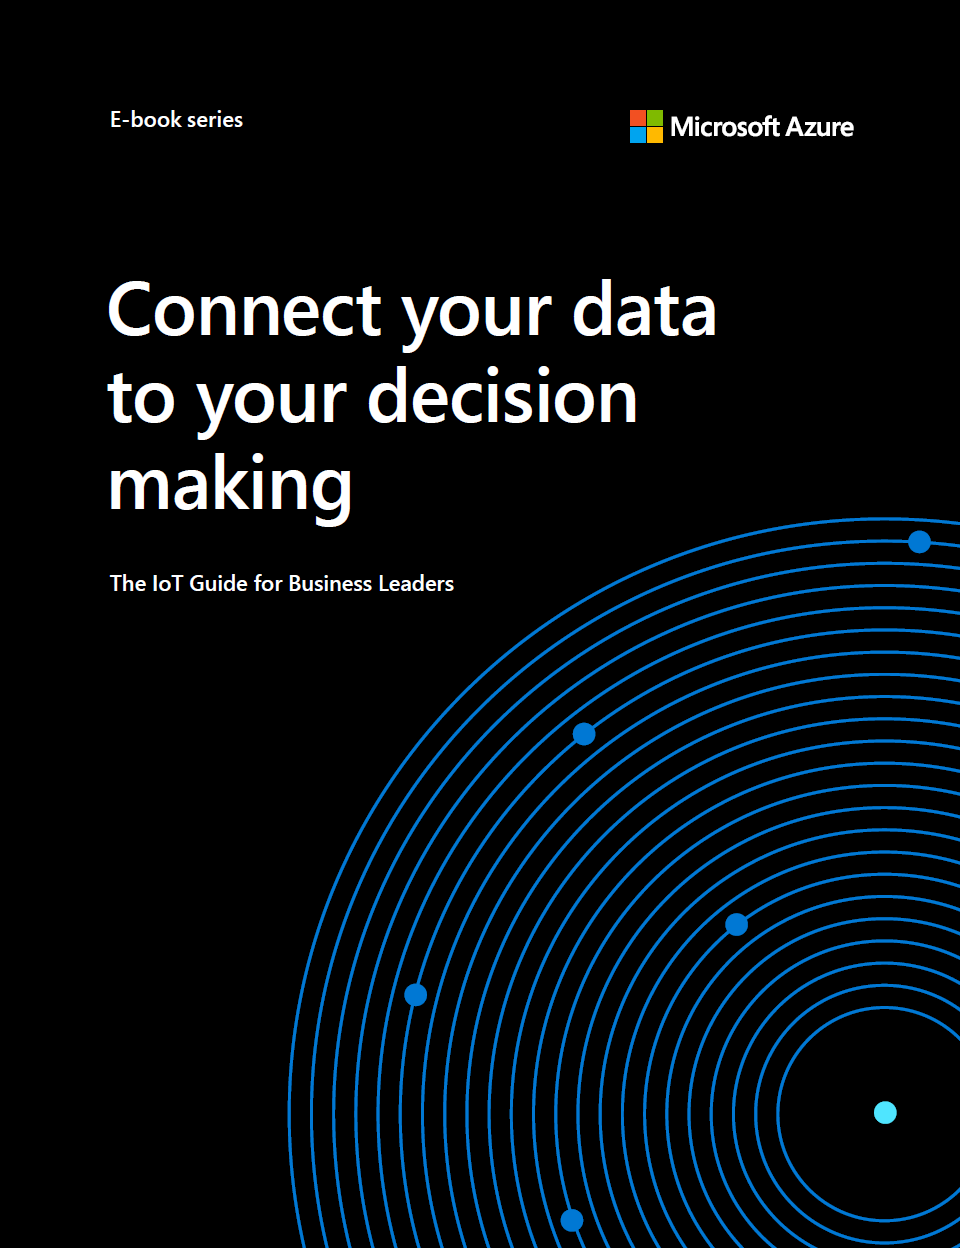 Connect Your Data to Your Decision Making Image